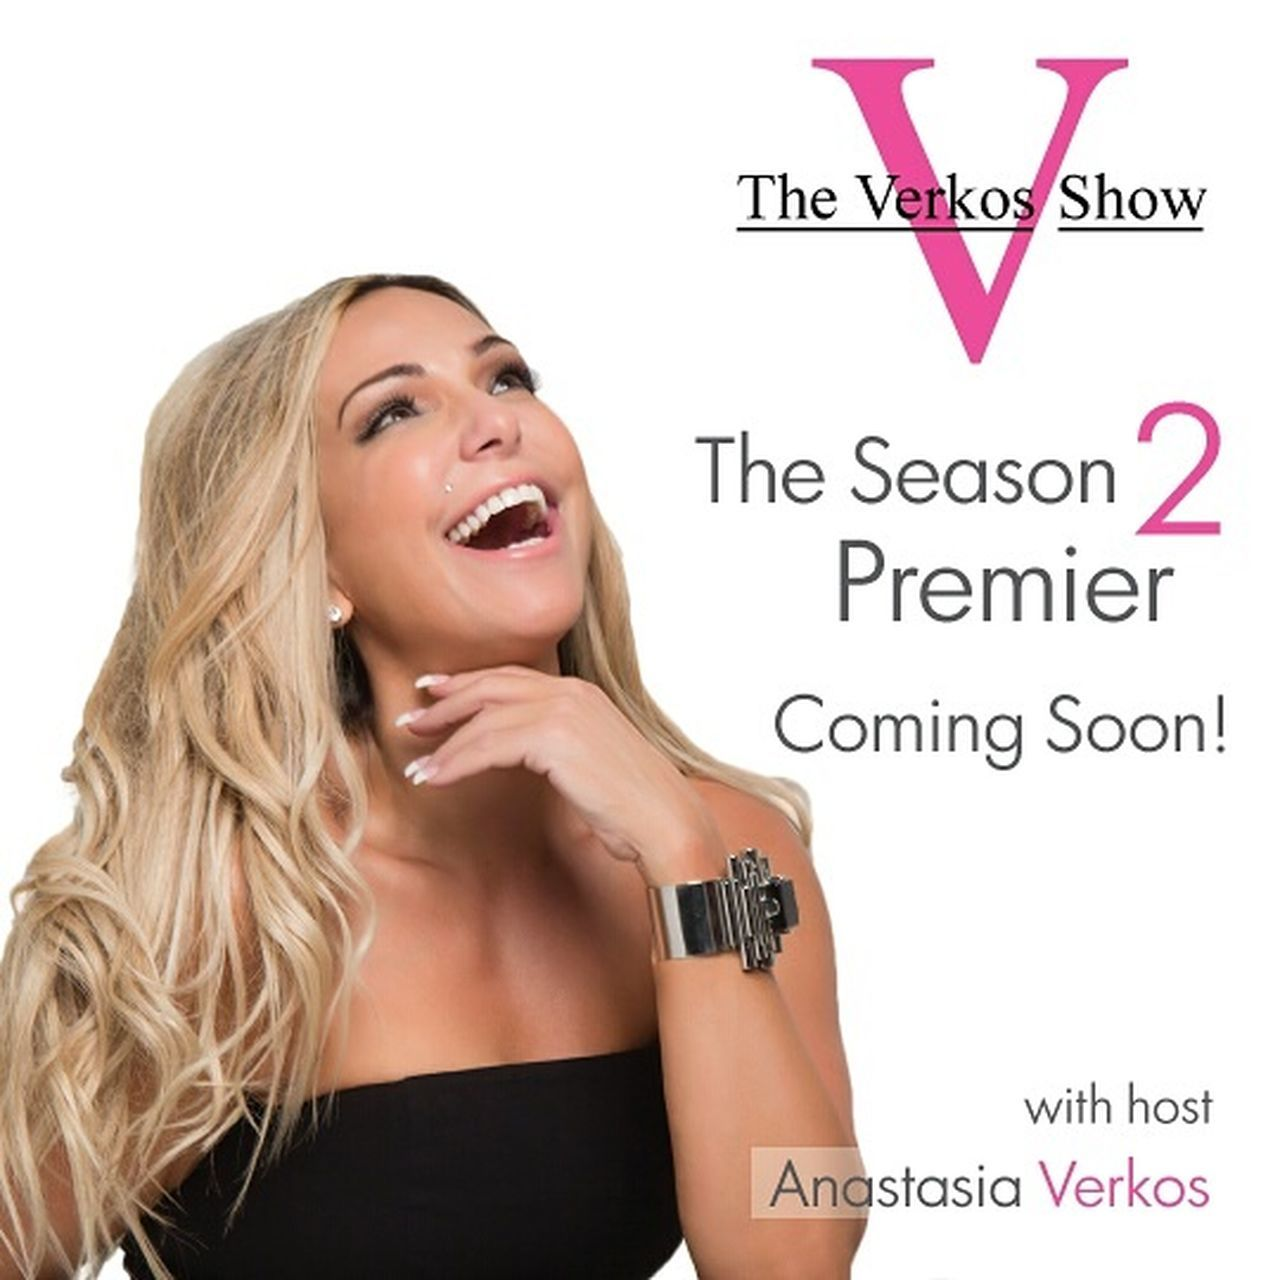 The Verkos Show on Facebook and YouTube join the Talk Show Angel Anastasia Verkos...Inspire to Empower ✌ Blond Hair Beautiful Woman Talkshowhost Talkshow Realitytvshow RealityTv Inspired Daily Empower Photooftheday Smiling OneLove One Woman Only Adults Only Only Women One Person Adult Women One Young Woman Only People Beauty Close-up Young Adult Human Body Part Day